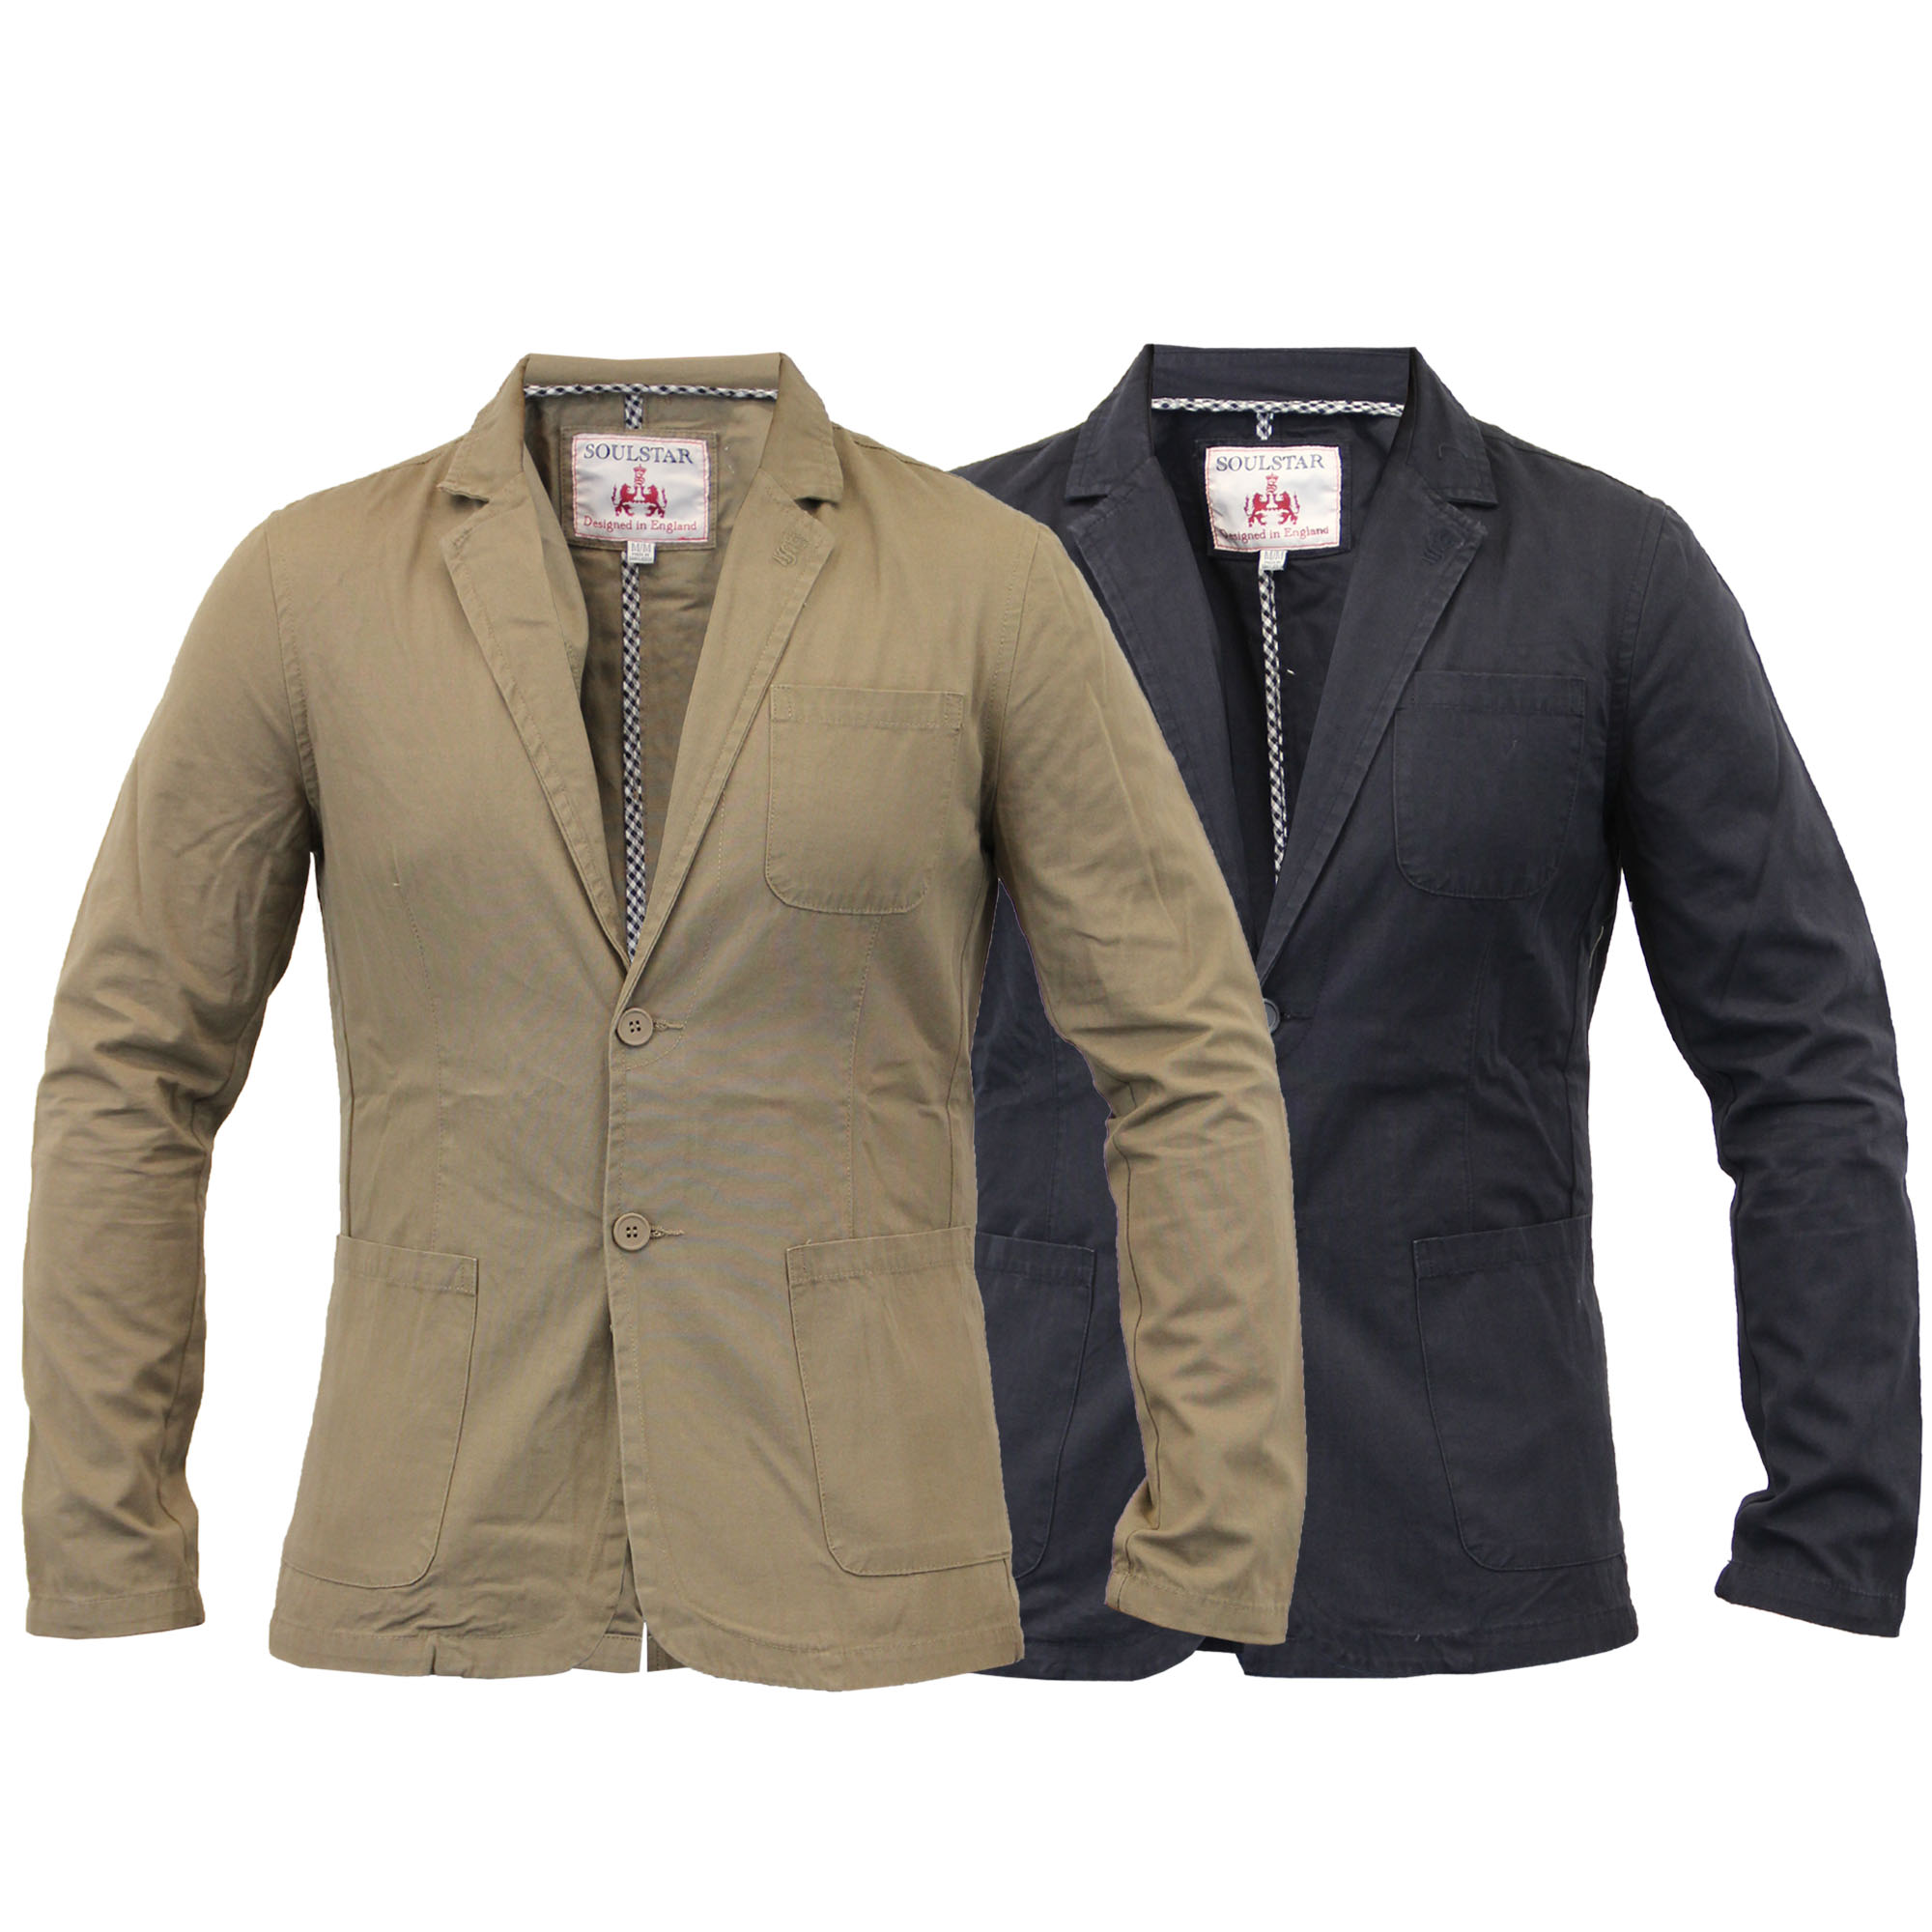 Discover elaborate cuts and premium quality with the casual jackets for men by HUGO BOSS in the official online store now. Free of any shipping costs!